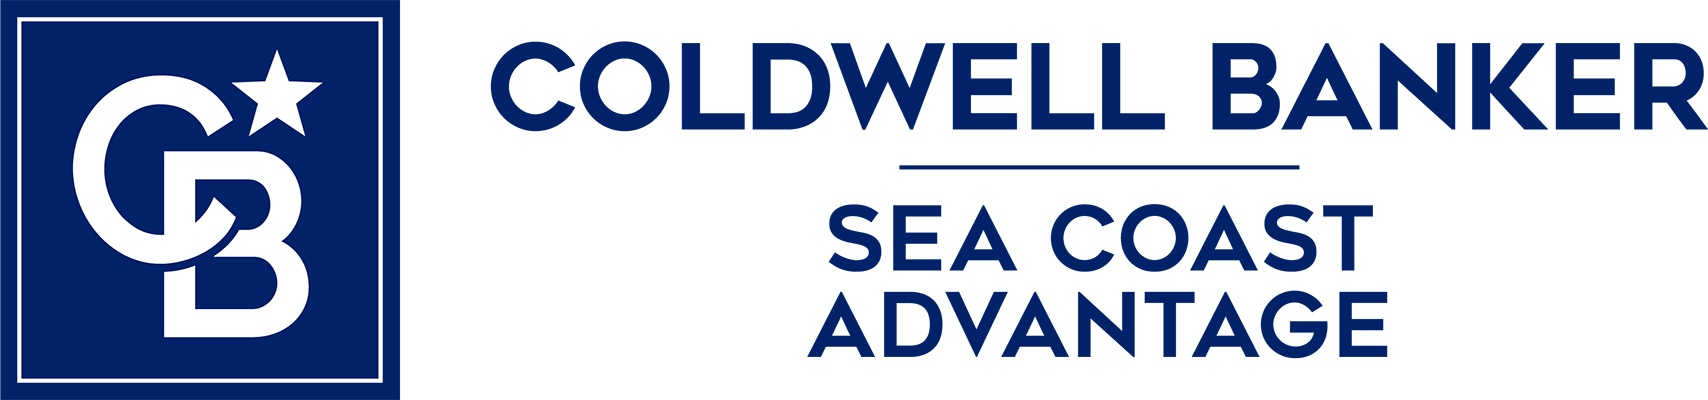 Helen Hepbron - Coldwell Banker Sea Coast Advantage Realty